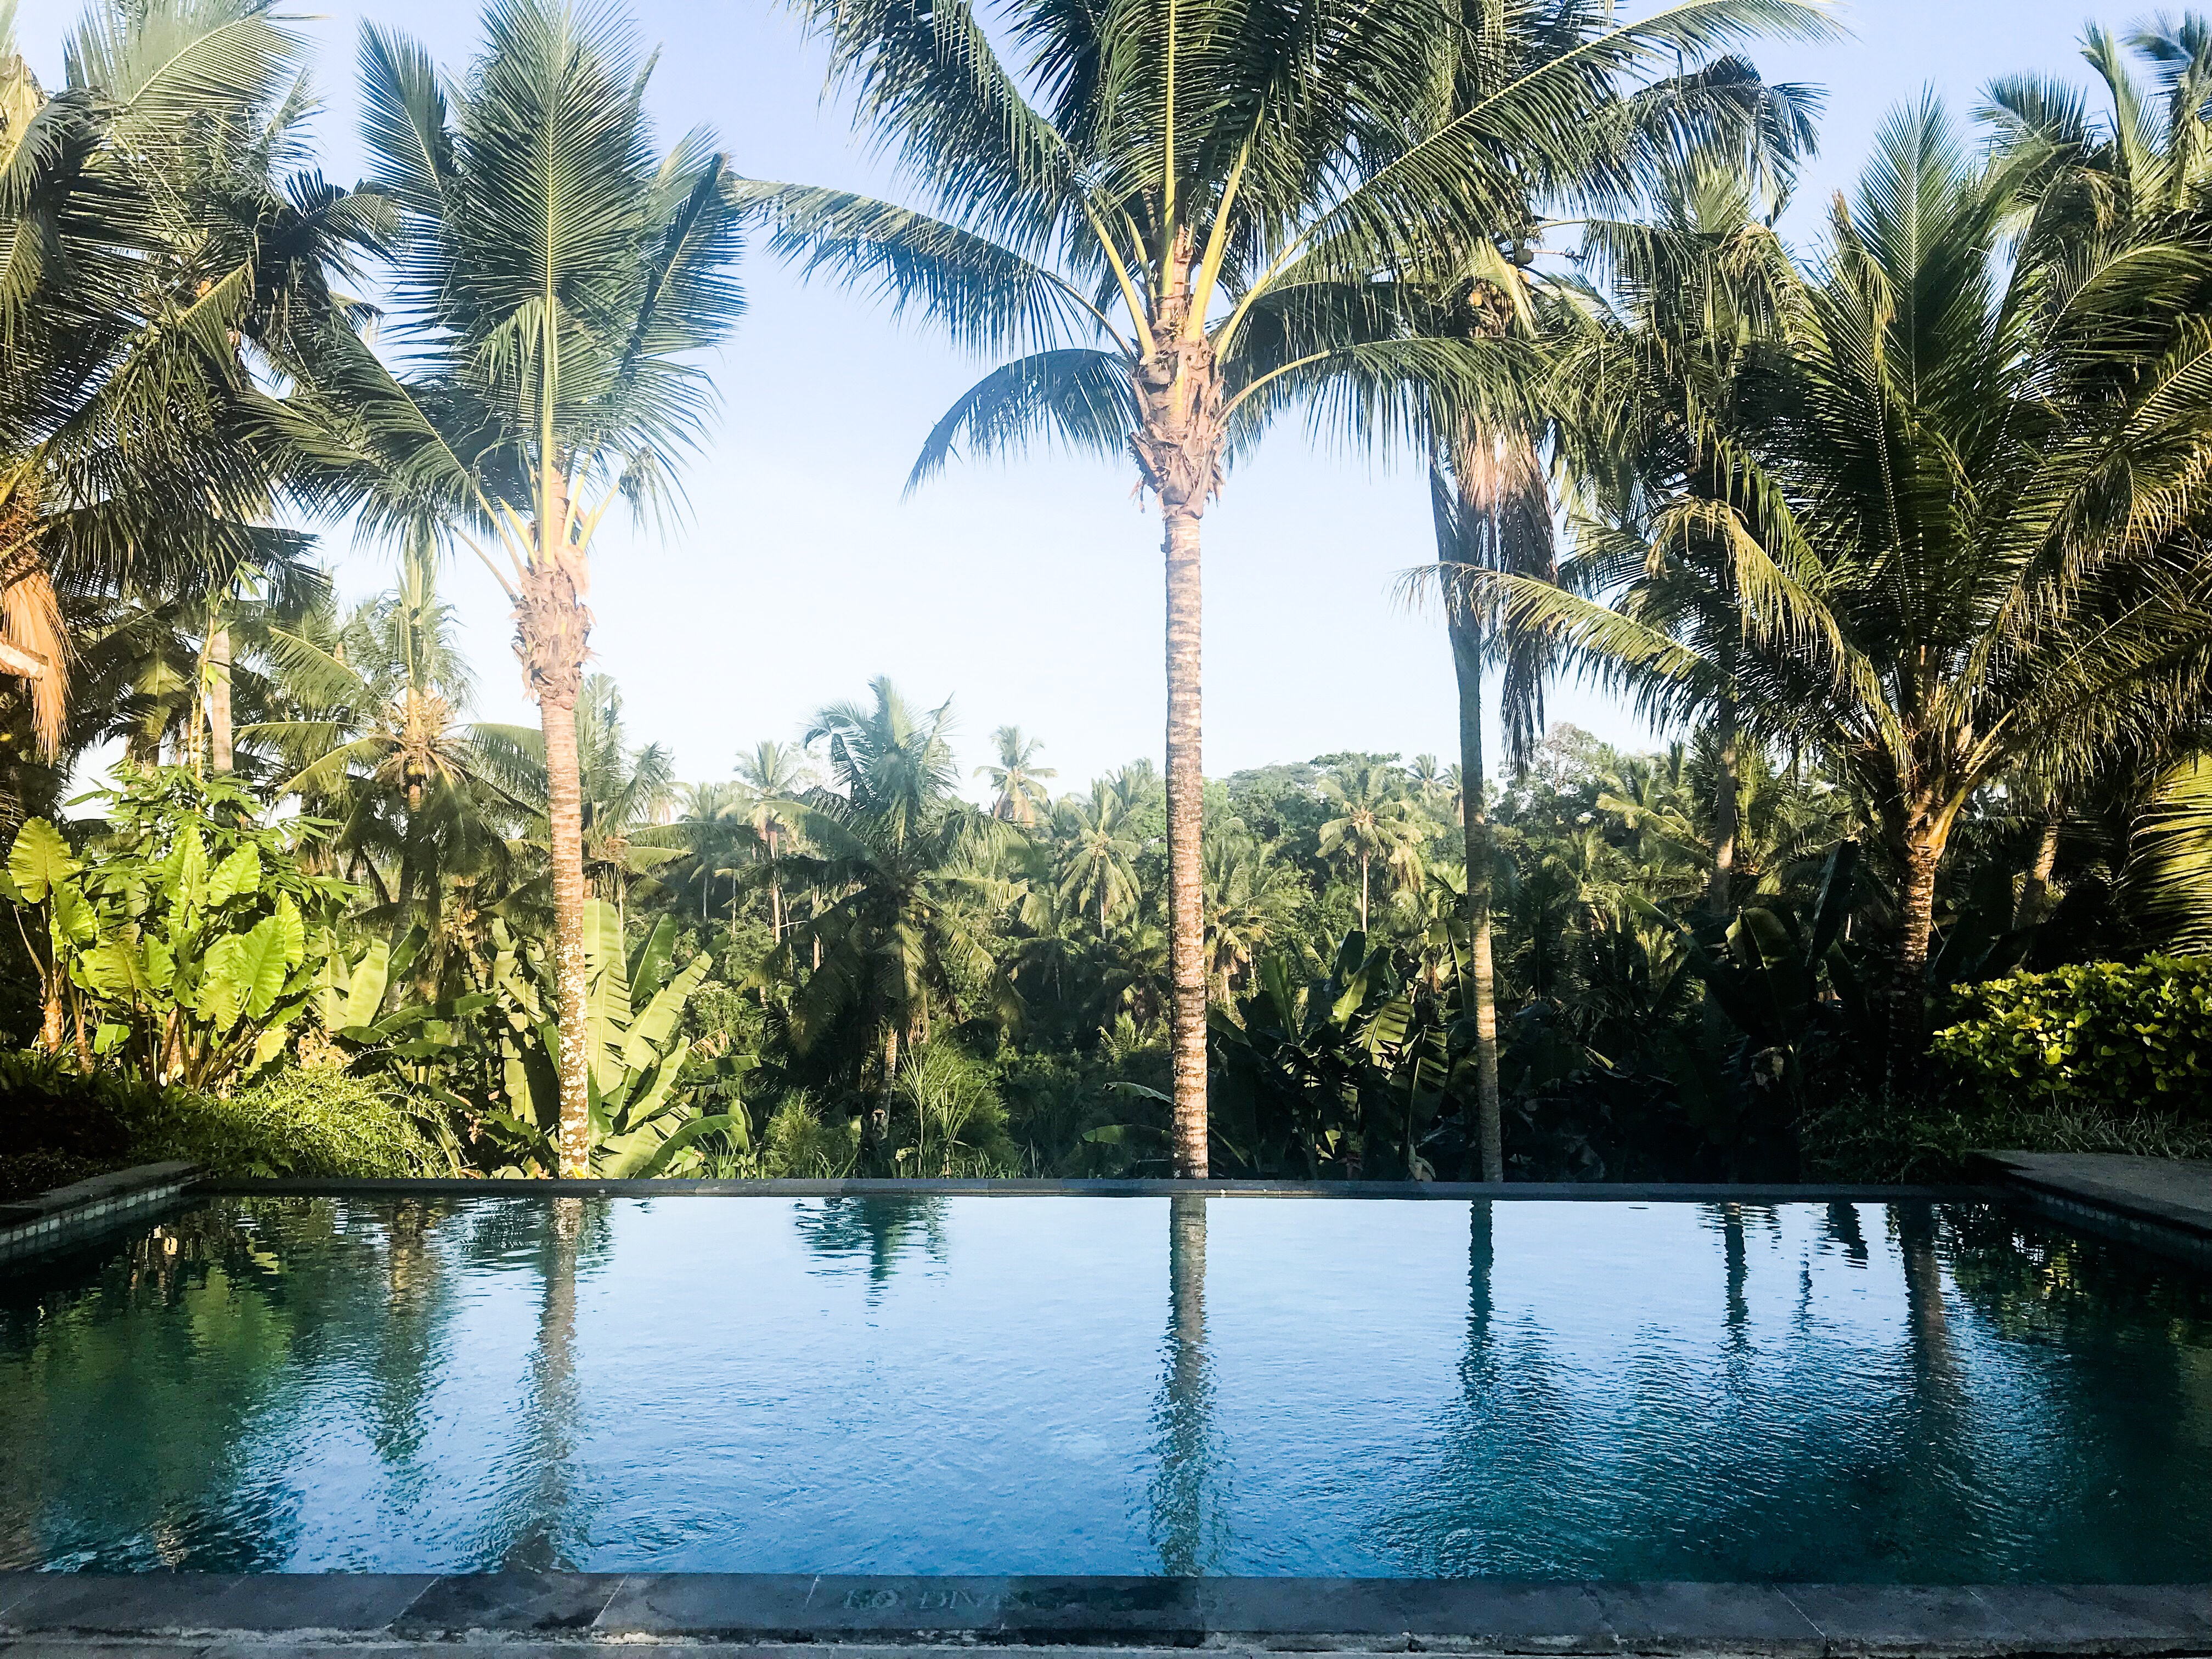 Our first couple of days in Bali